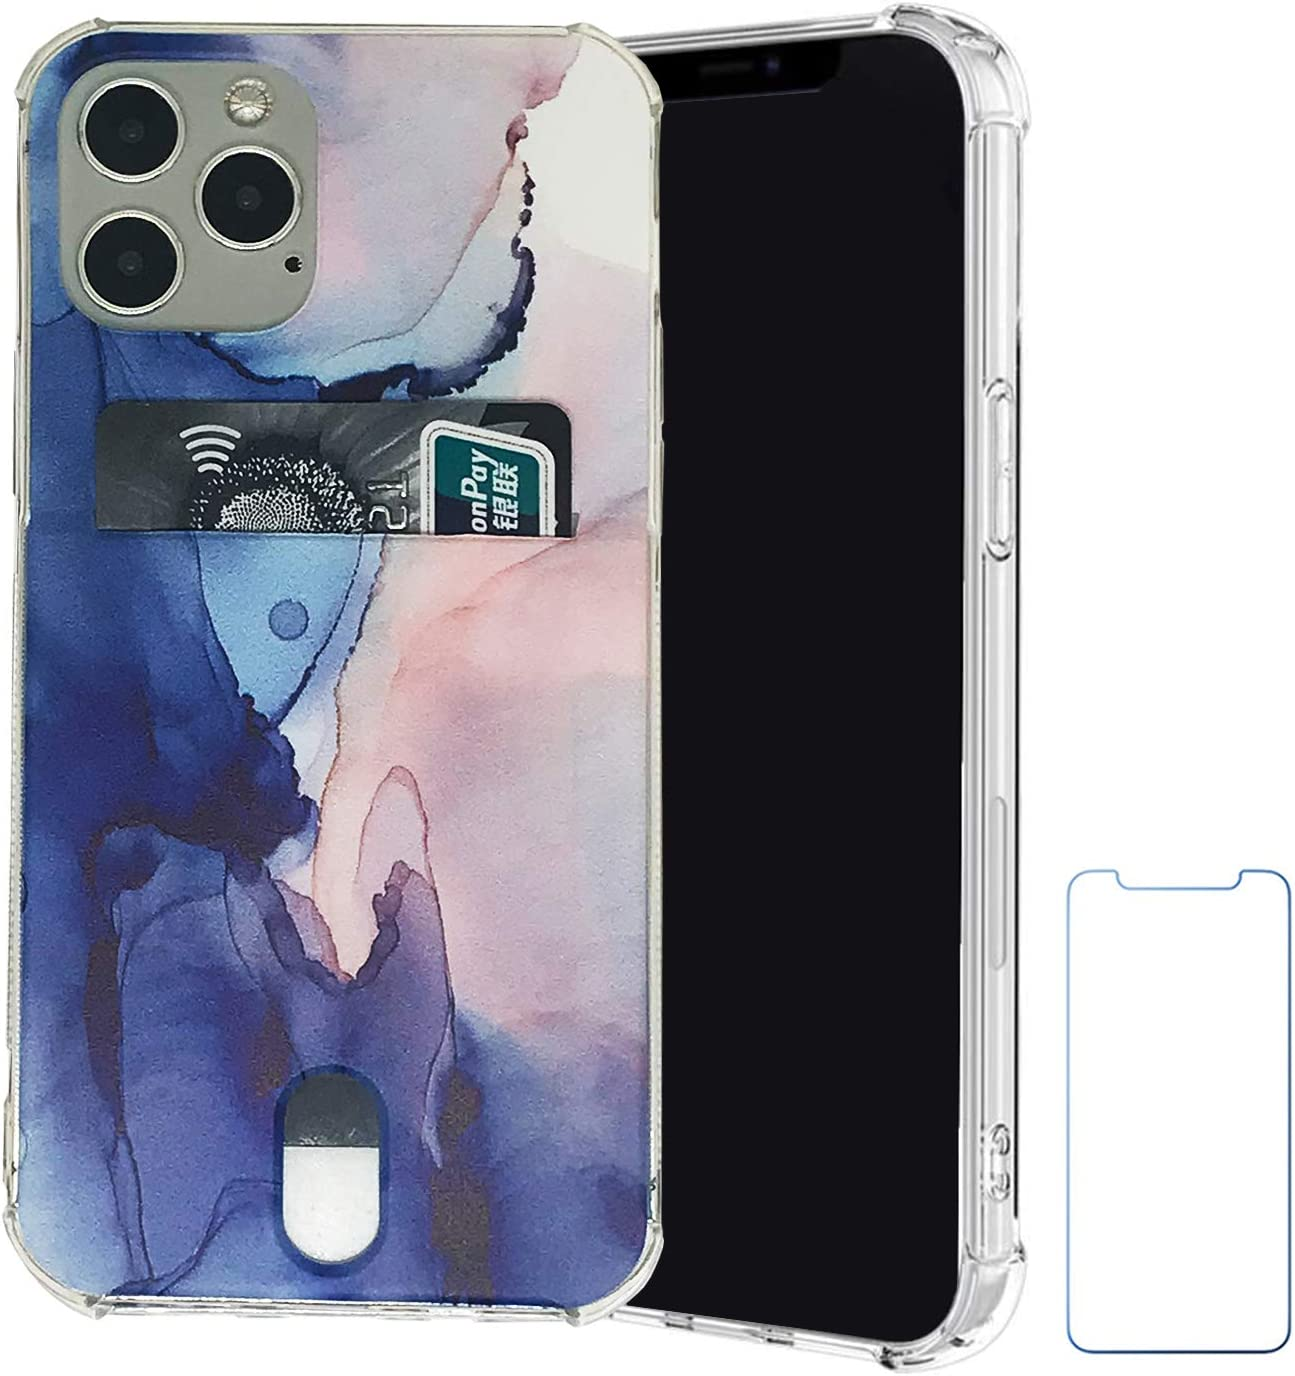 Wallet Case Compatible with iPhone 12 Pro Case for iPhone 12 6.1 inch (2020) with Card Holder Slot Ultra-Slim Soft TPU Clear Cover with Screen Protector (Blue Pink Marble)